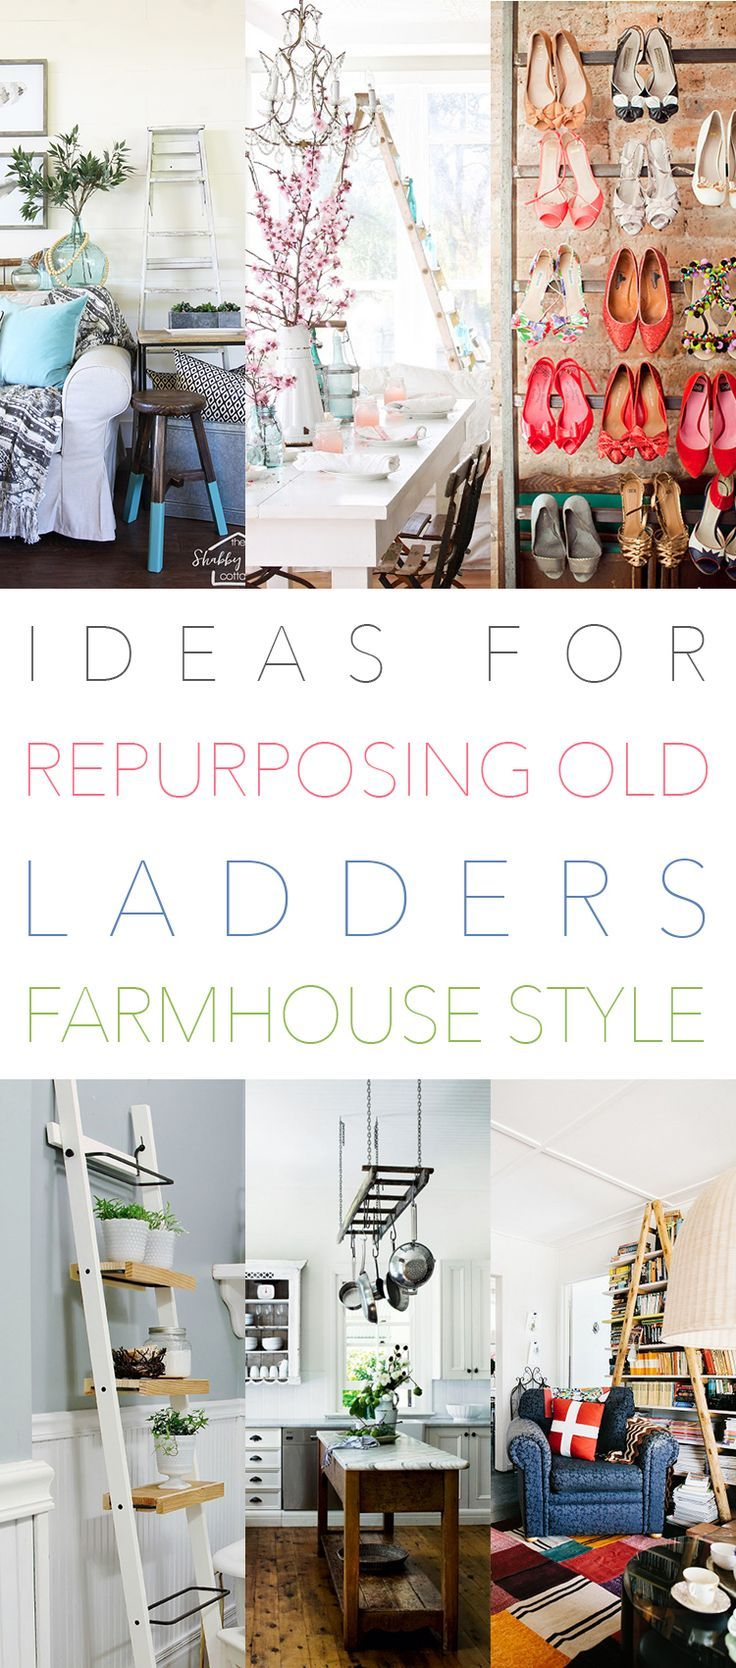 56 best DIY Inspiration! images on Pinterest | Home ideas, House ...